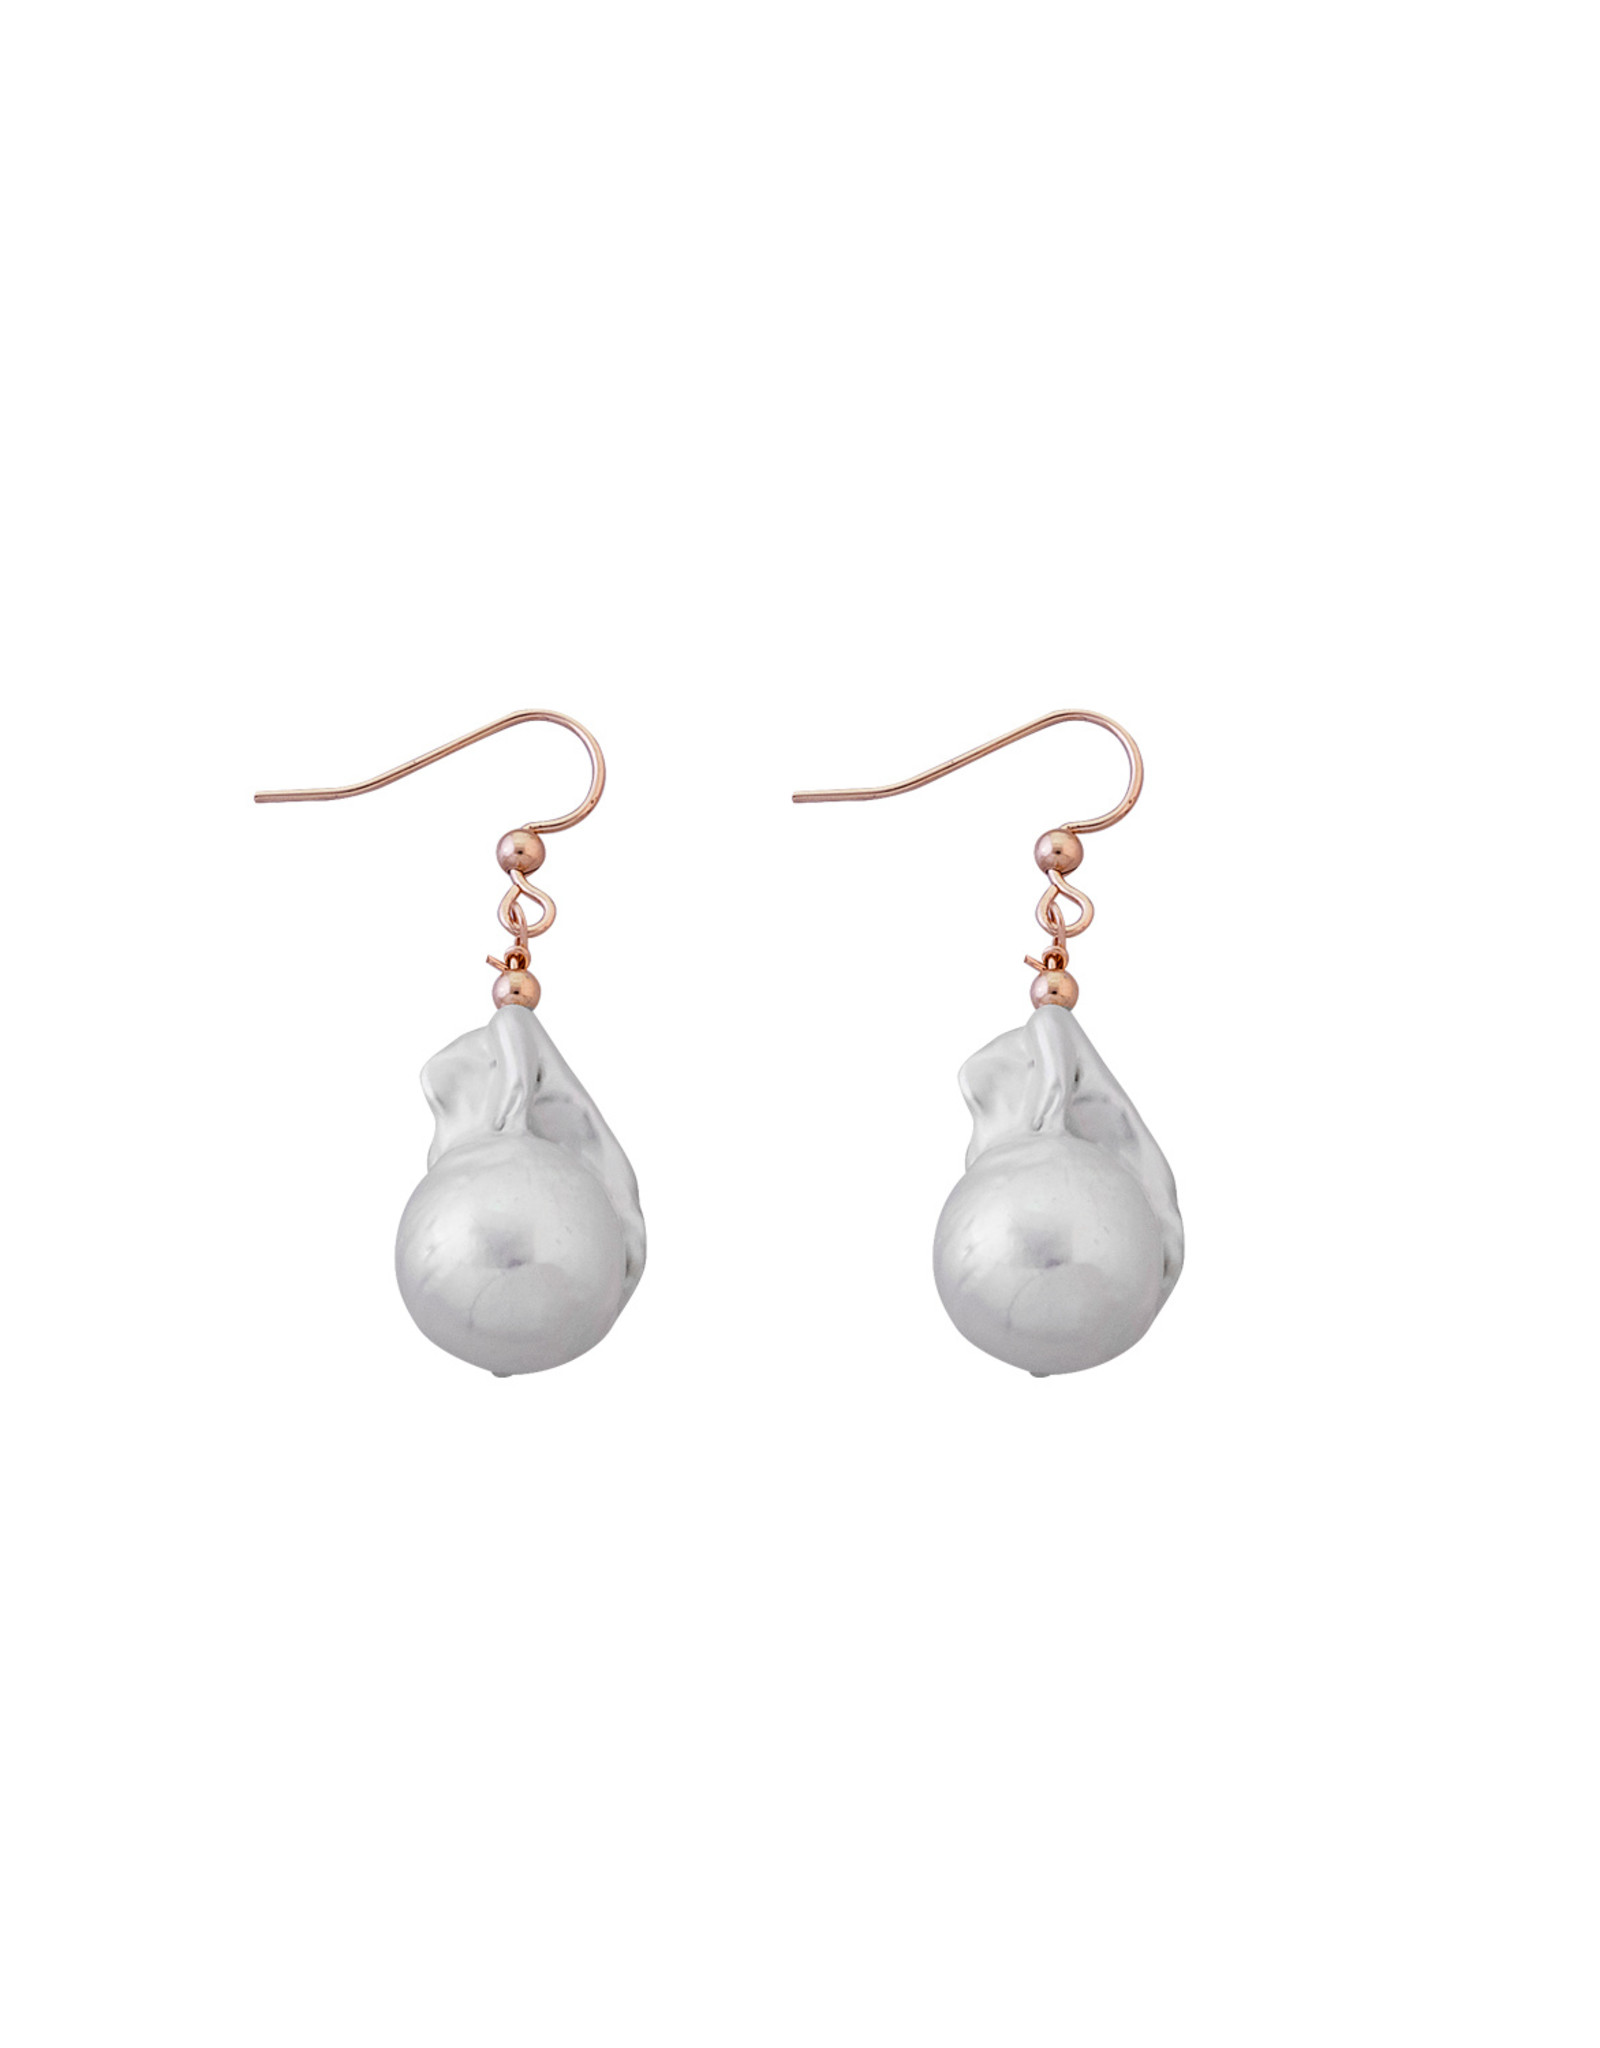 VON TRESKOW LARGE BAROQUE PEARL EARRINGS ROSE GOLD